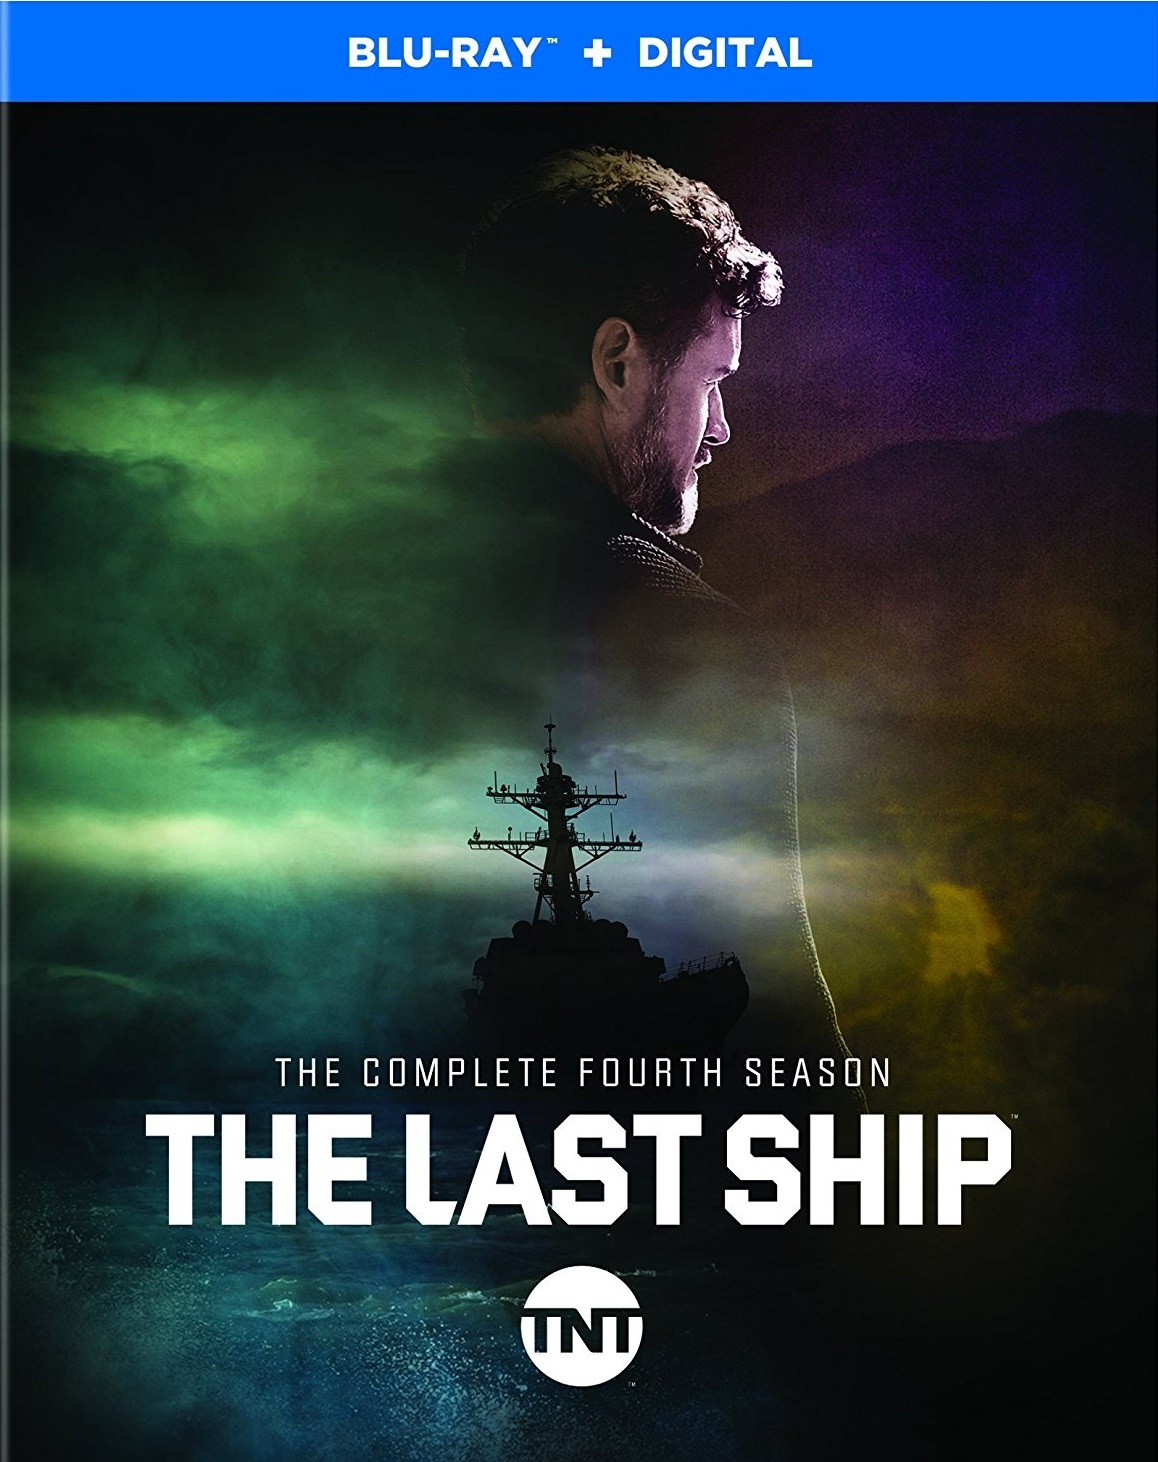 The Last Ship: The Complete Fourth Season (TV) (2017) Blu-ray